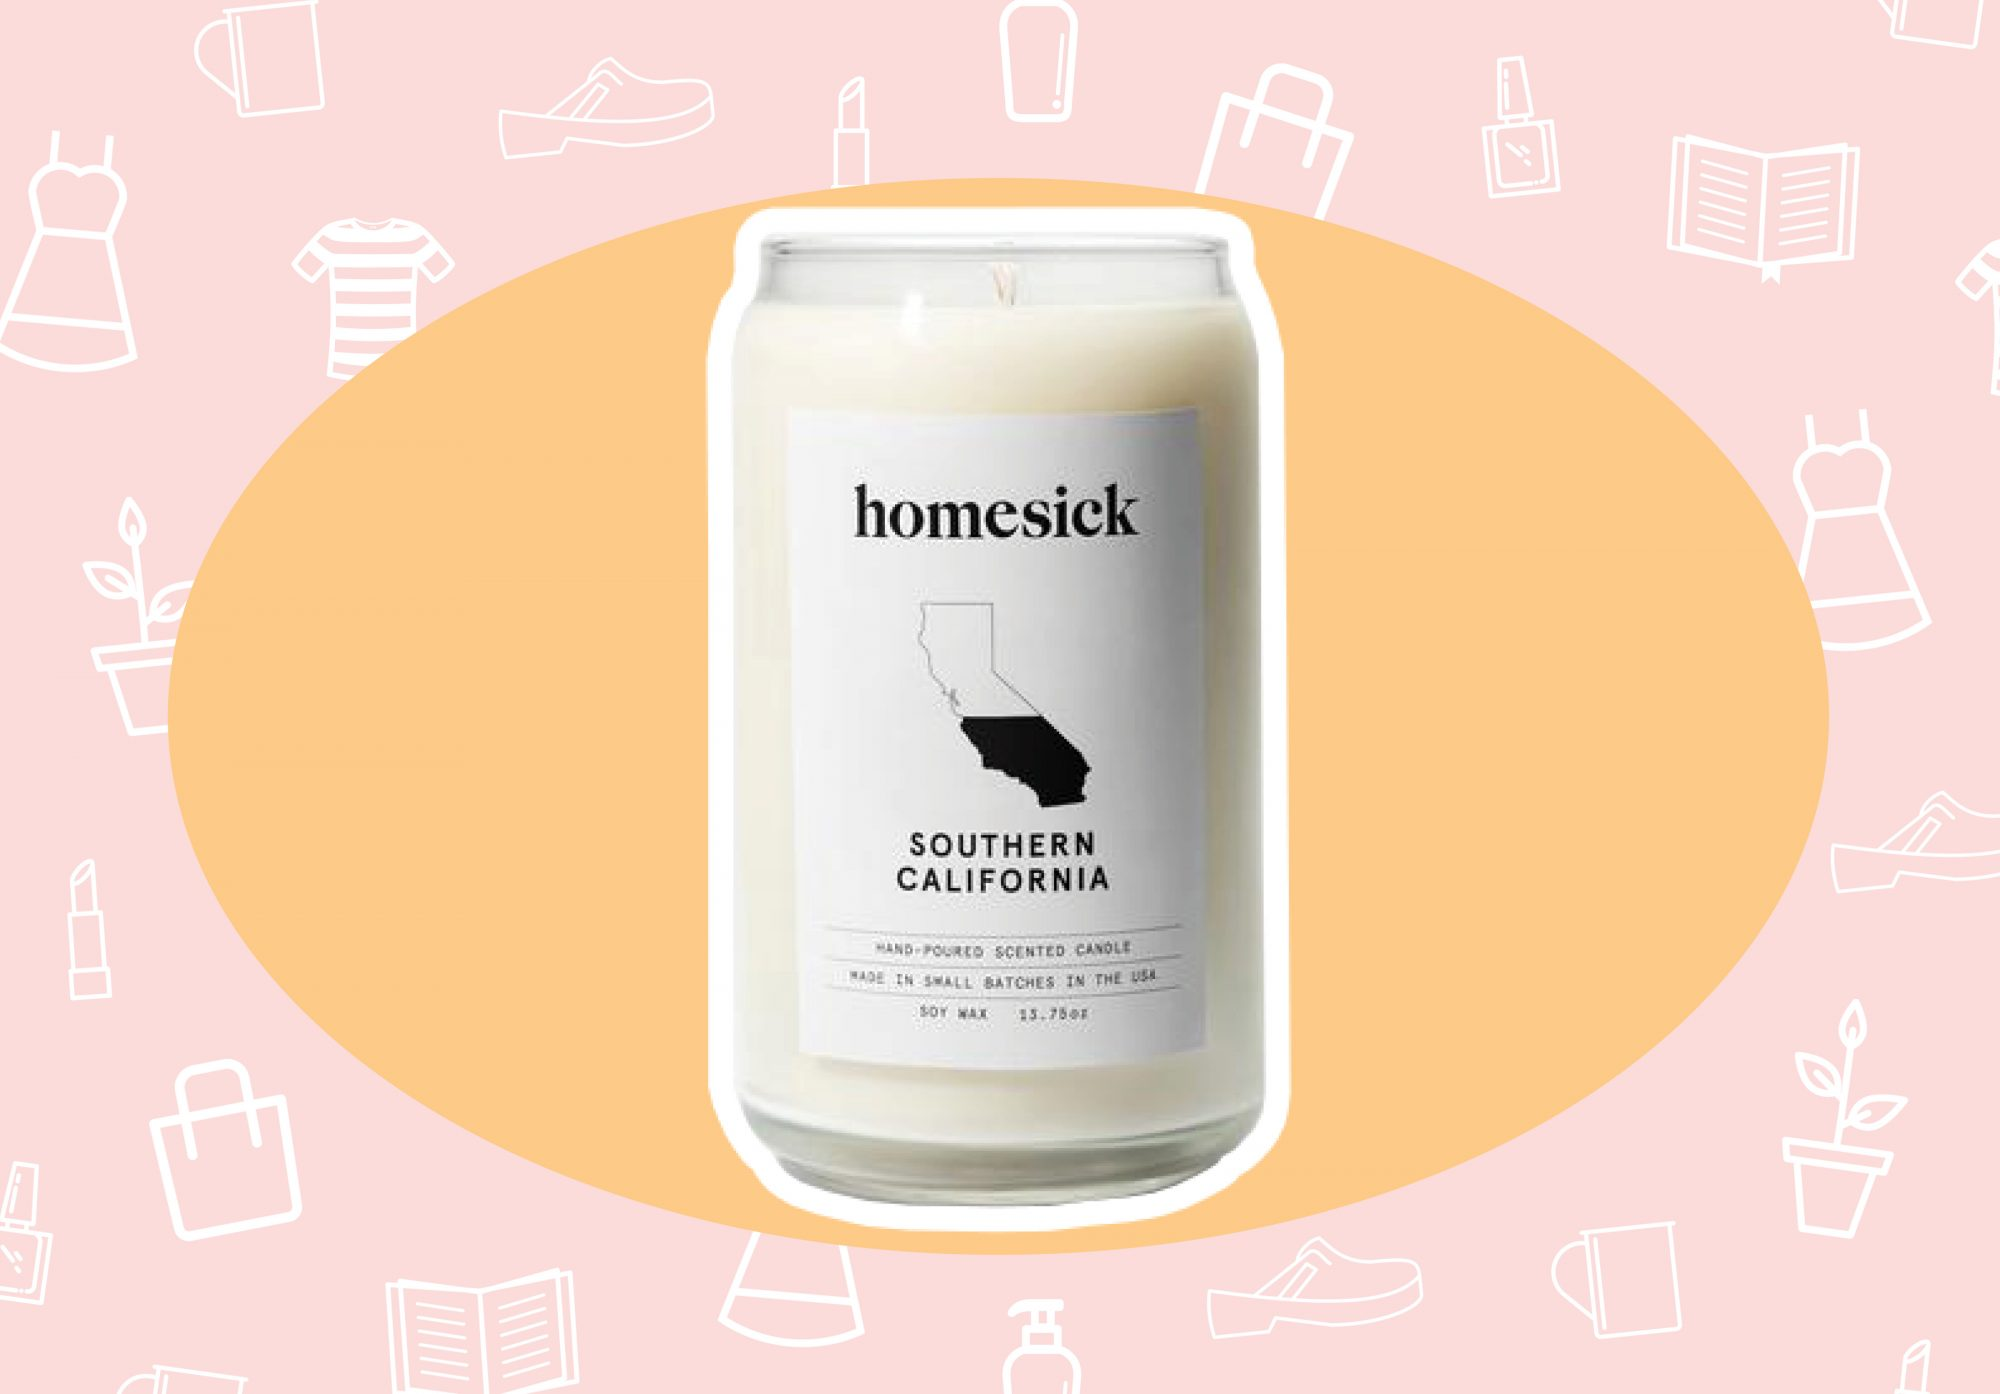 homesickcandle